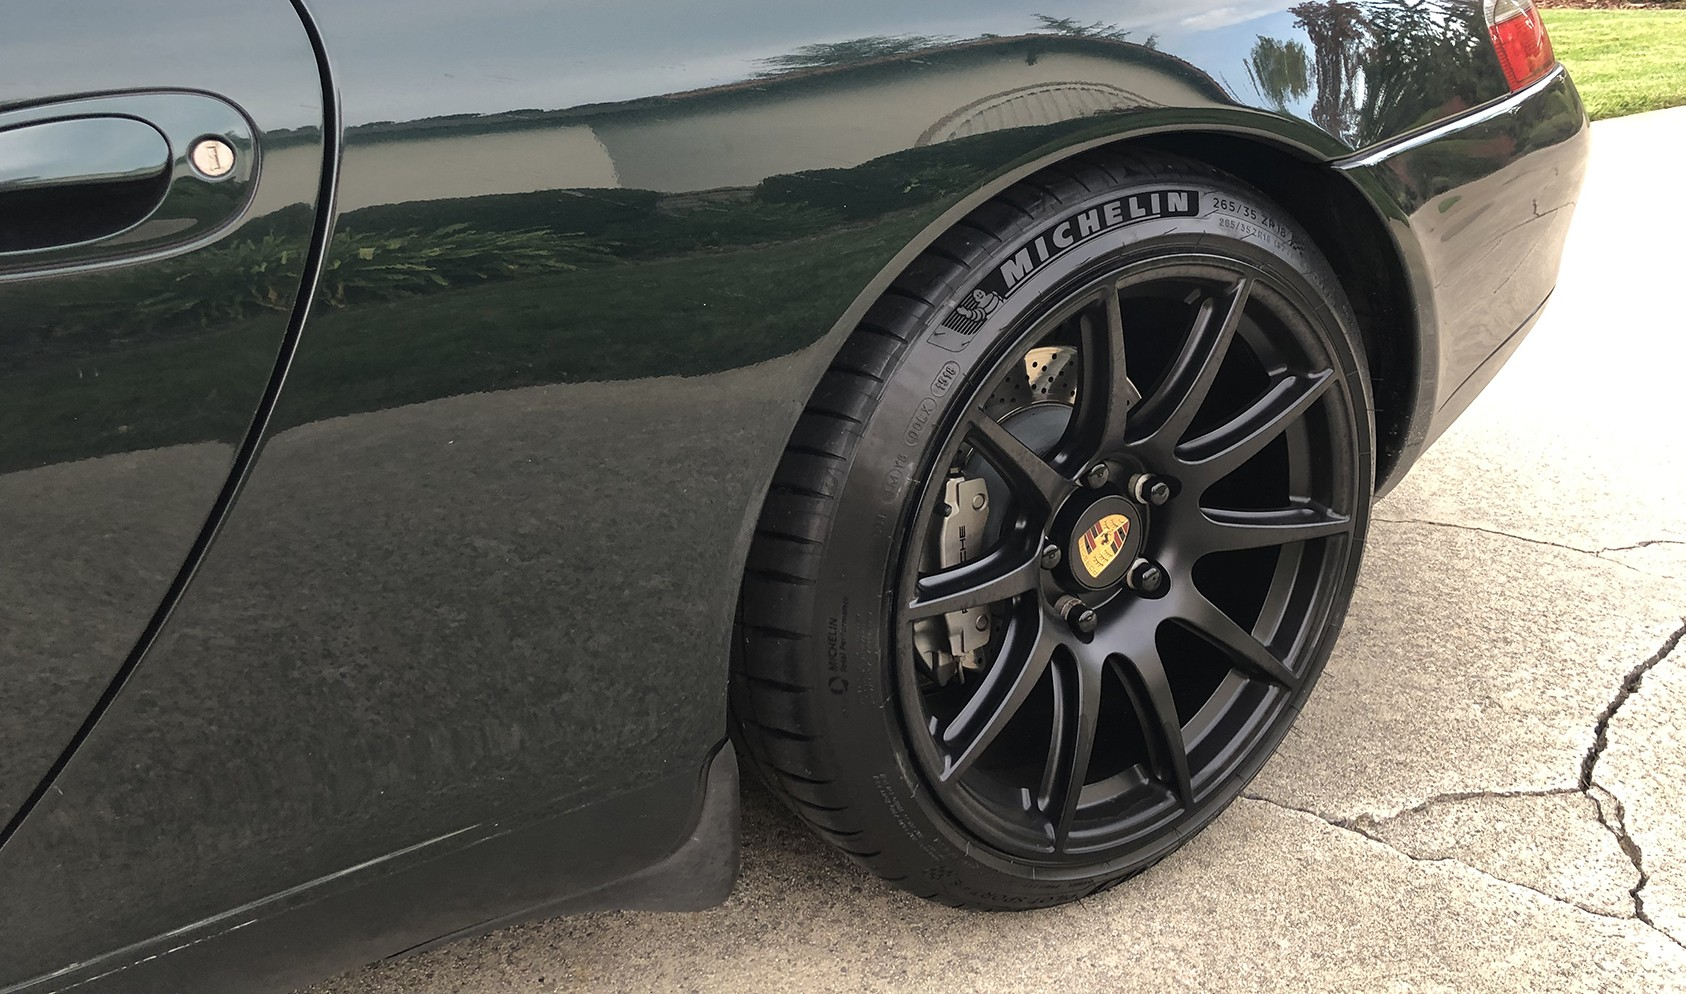 """911/996<br />Front: Satin Black 18x8.5"""" ET42 SM-10 with 225/40-18 Michelin Pilot Sport 4S & -2° camber<br />Rear: Satin Black 18x11.0"""" ET60 SM-10 with 265/35-18 Michelin Pilot Sport 4S"""